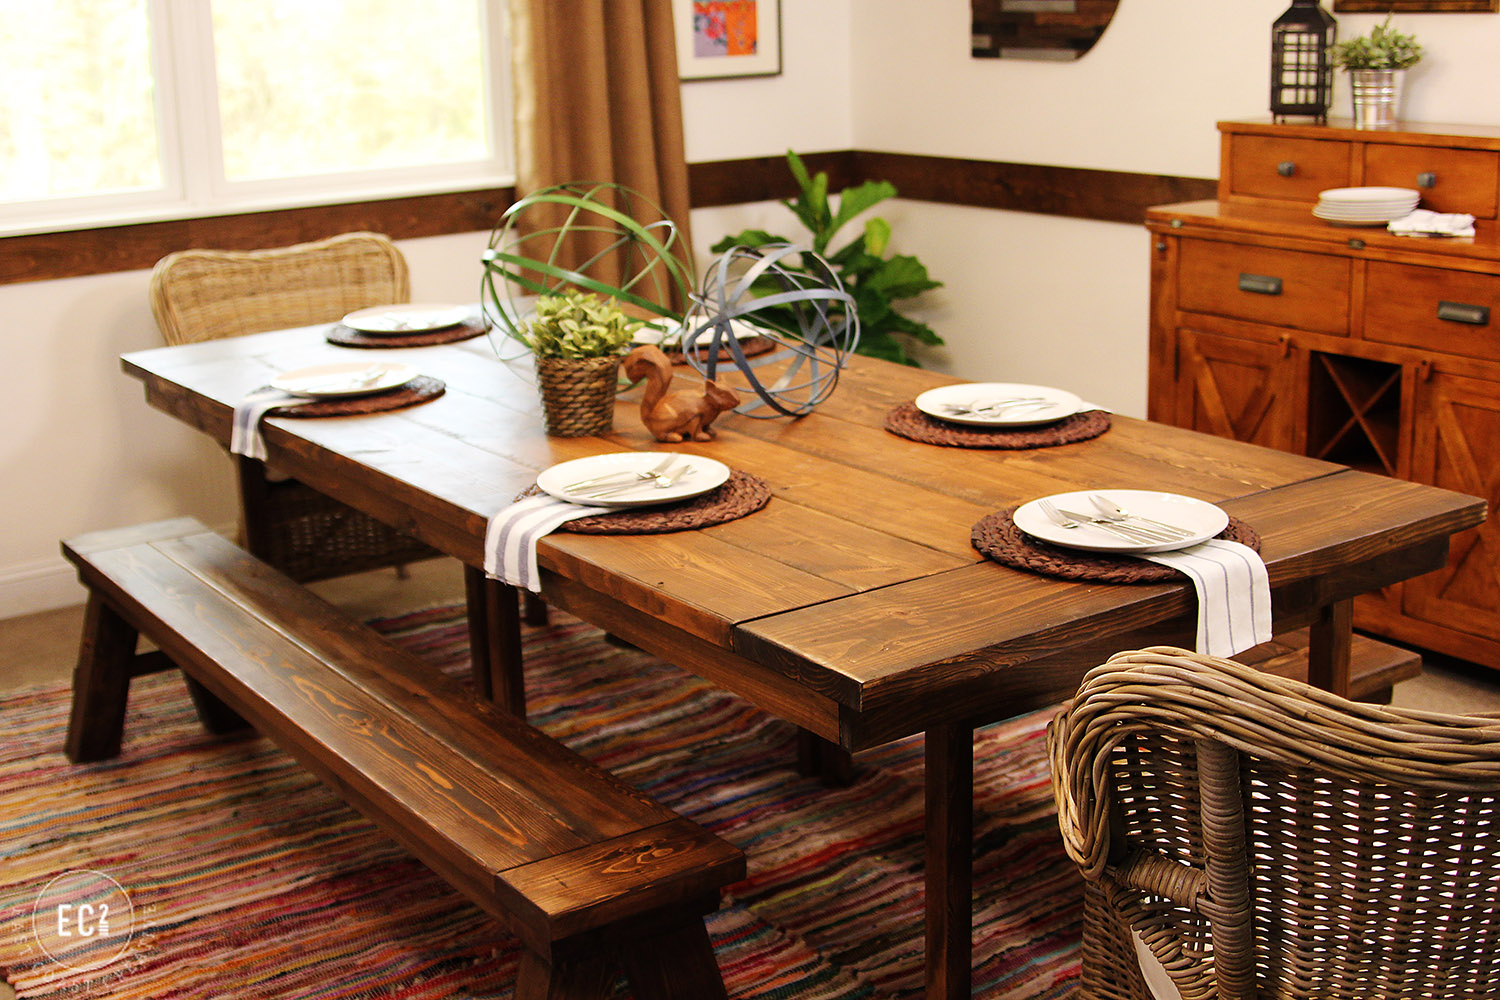 farm house table ikea hack diy build wood easy how to project budget makeover